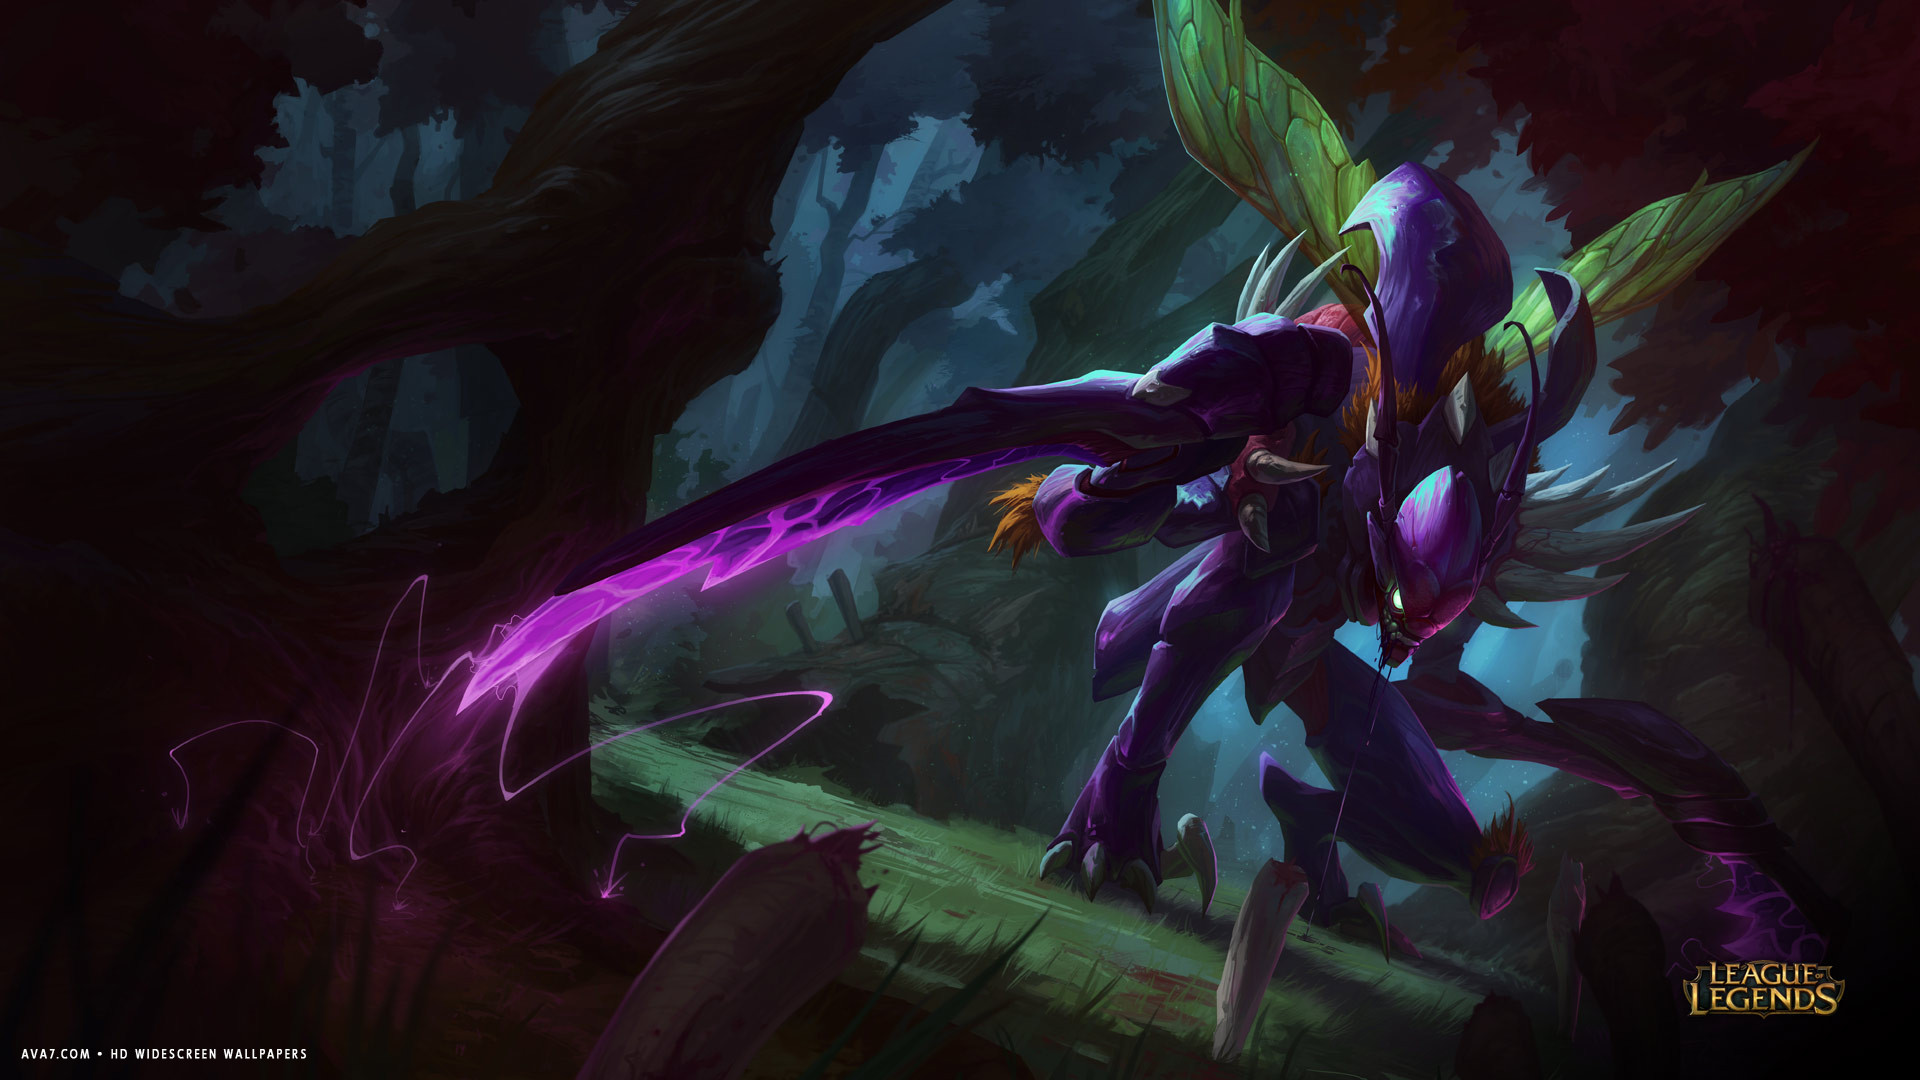 ... lol kha zix monster wings hd widescreen wallpaper / games backgrounds